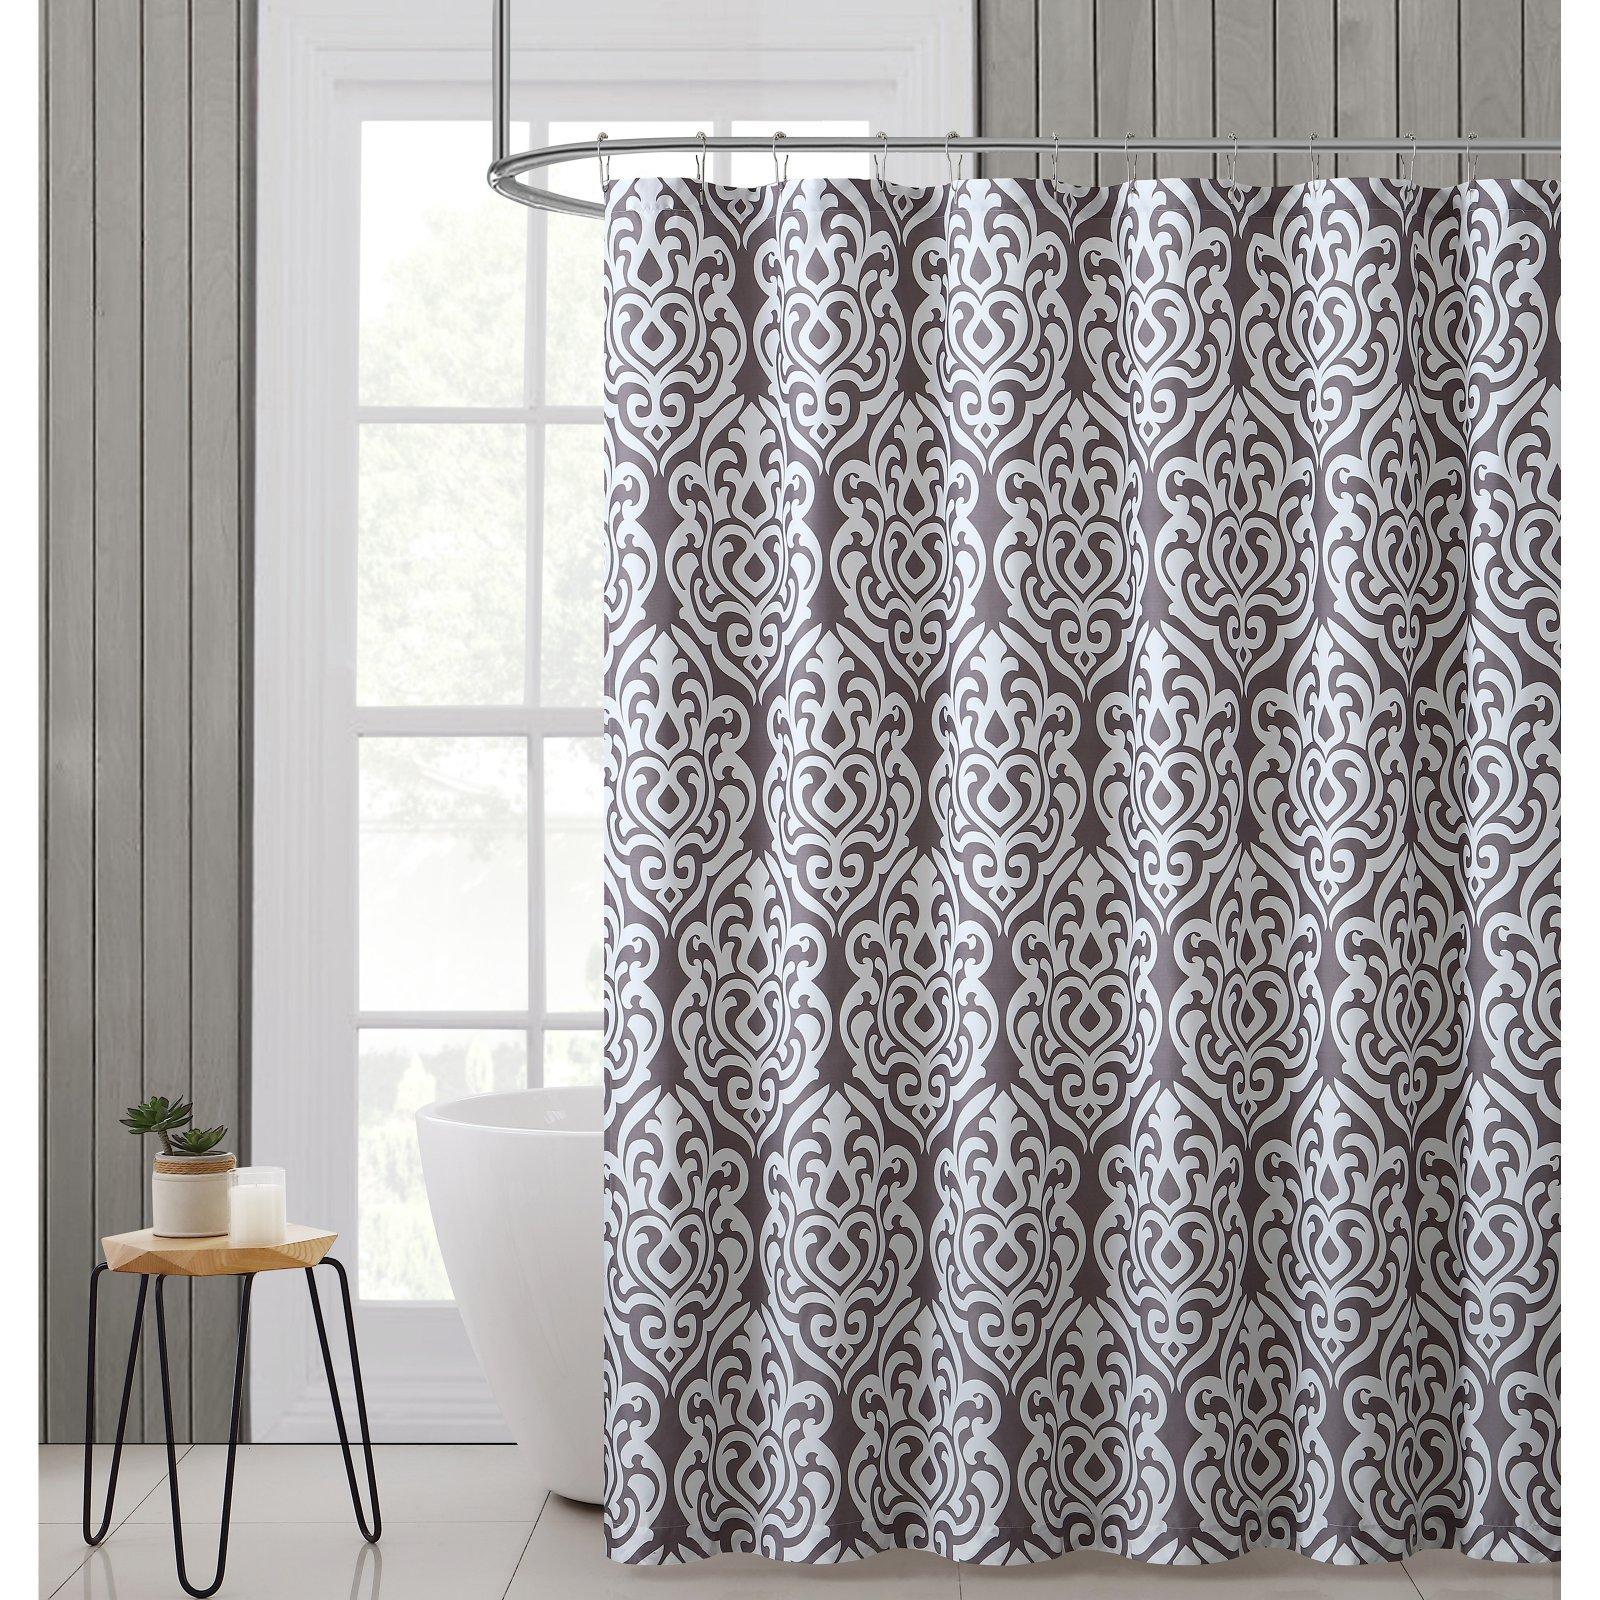 "VCNY Home Gray Cane Damask 72""x72"" Shower Curtain"